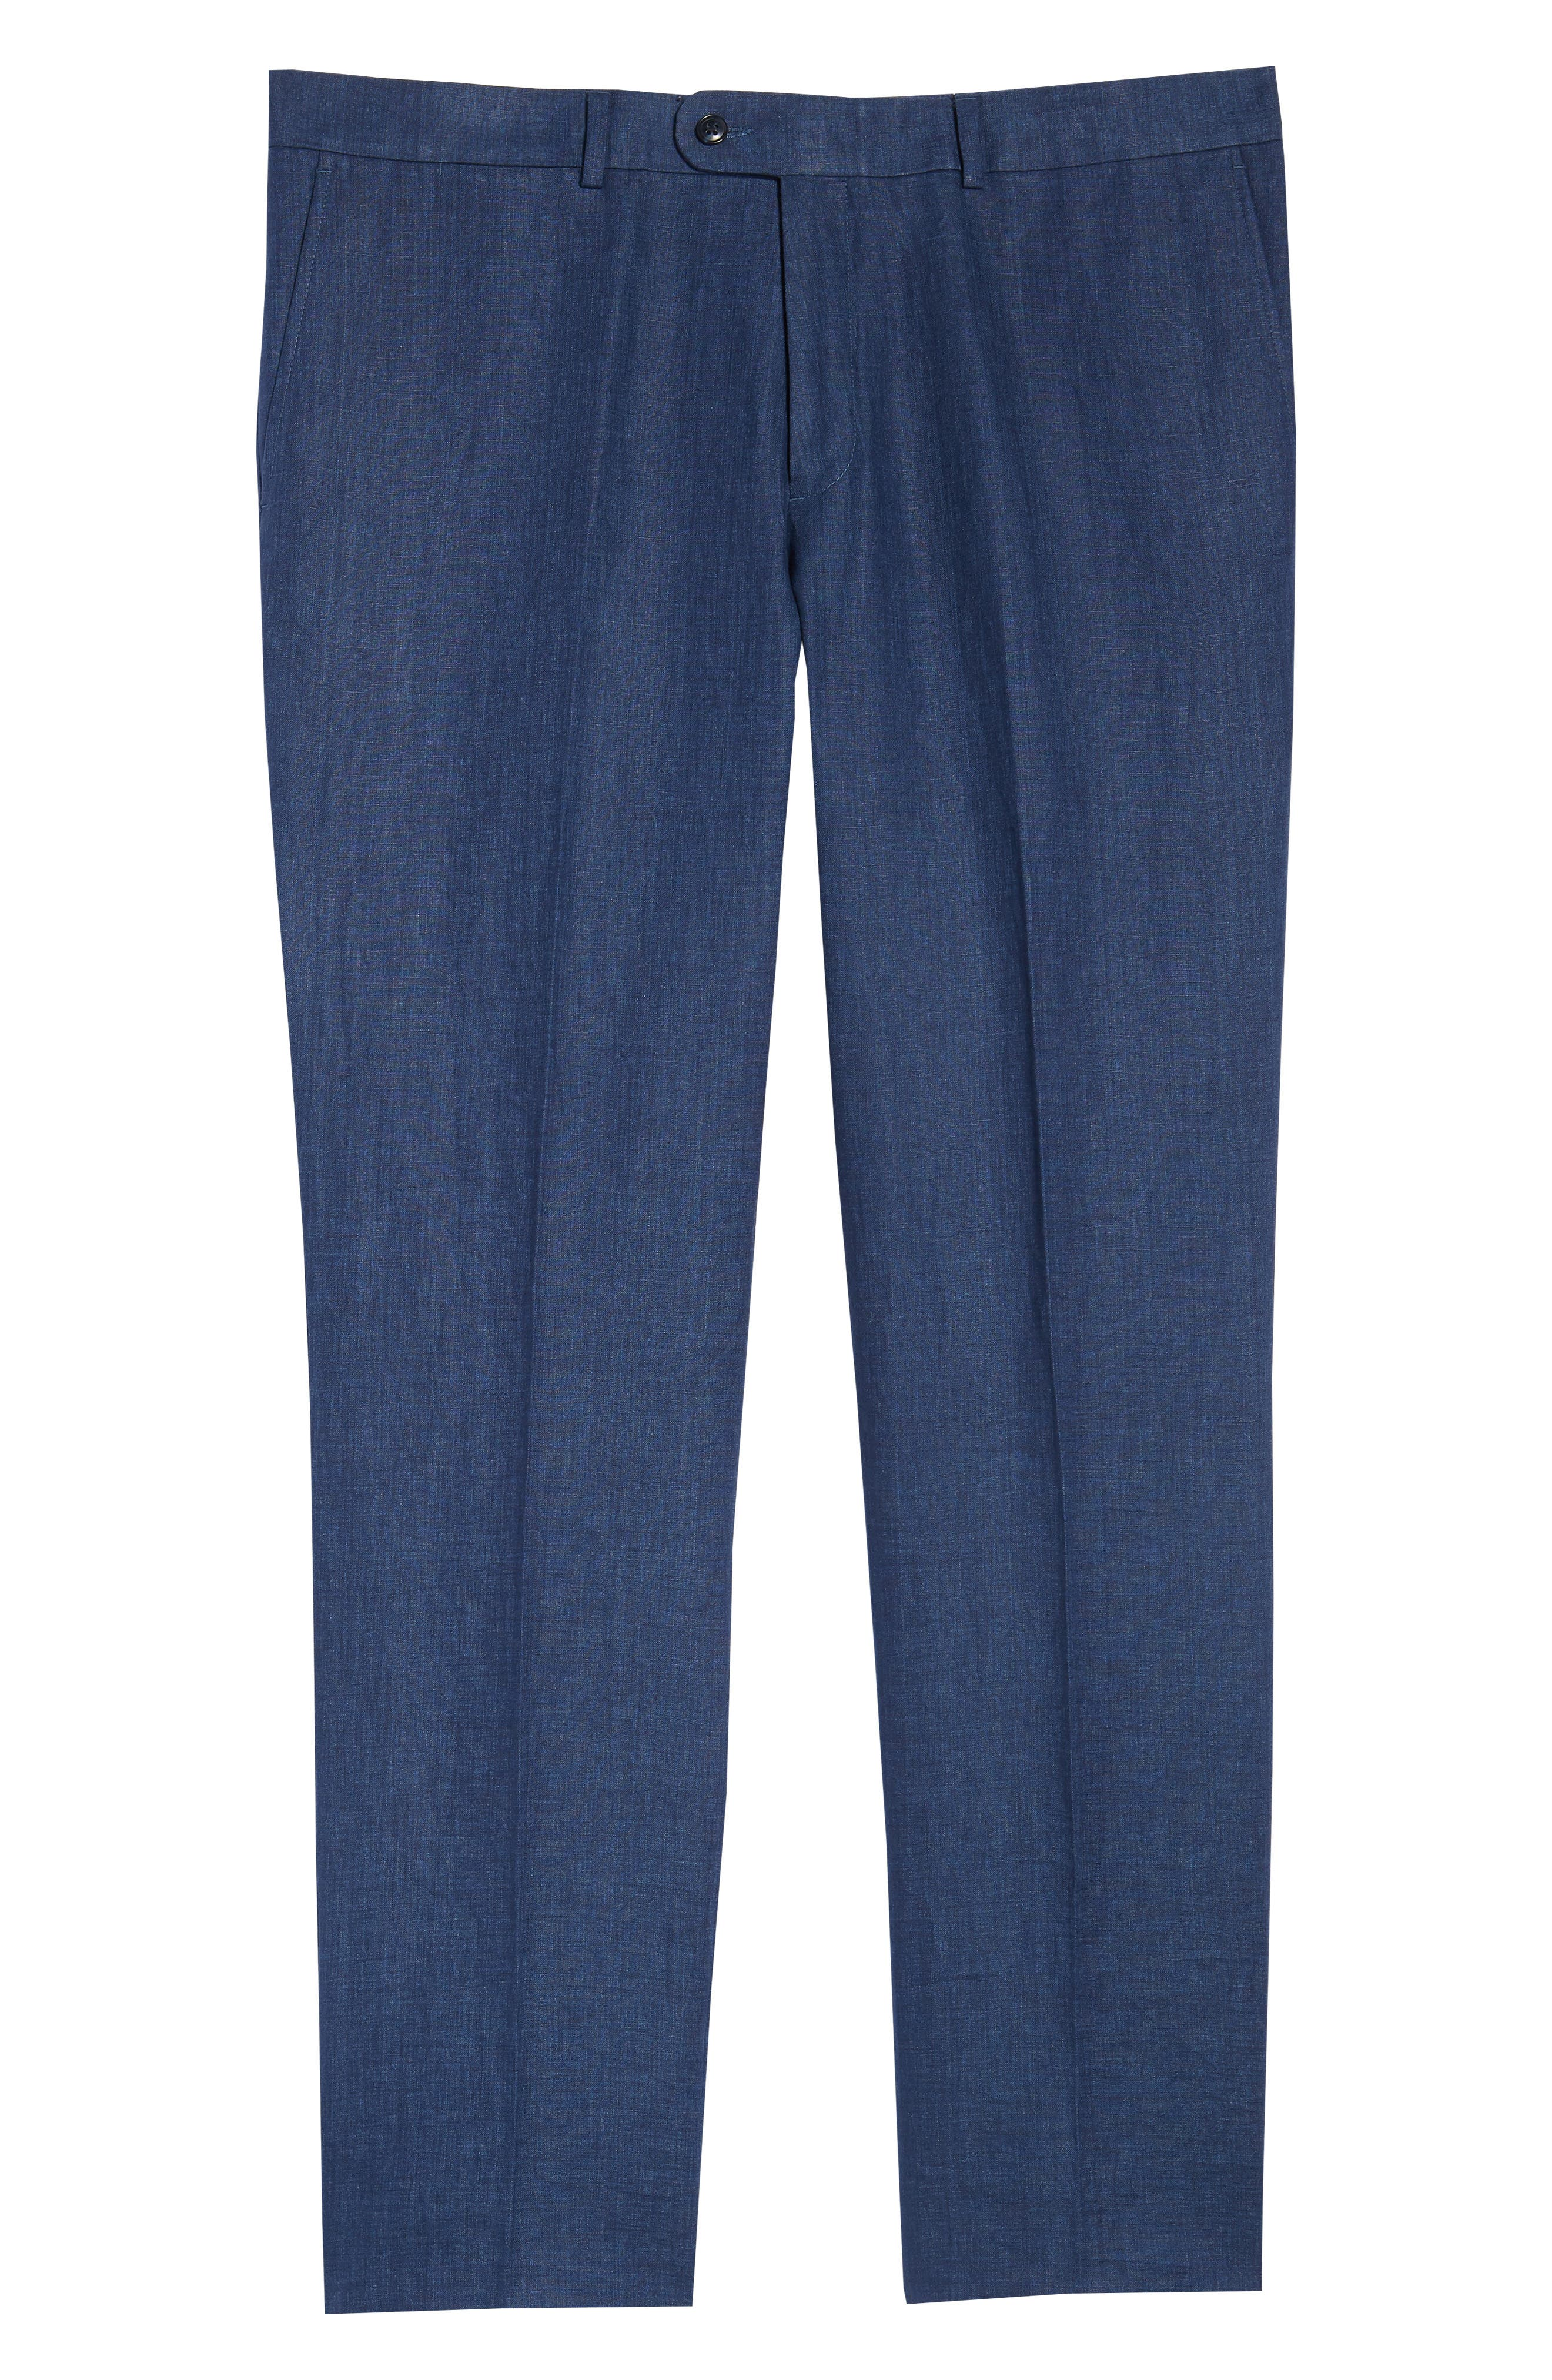 Andrew AIM Flat Front Linen Trousers,                             Alternate thumbnail 6, color,                             NAVY